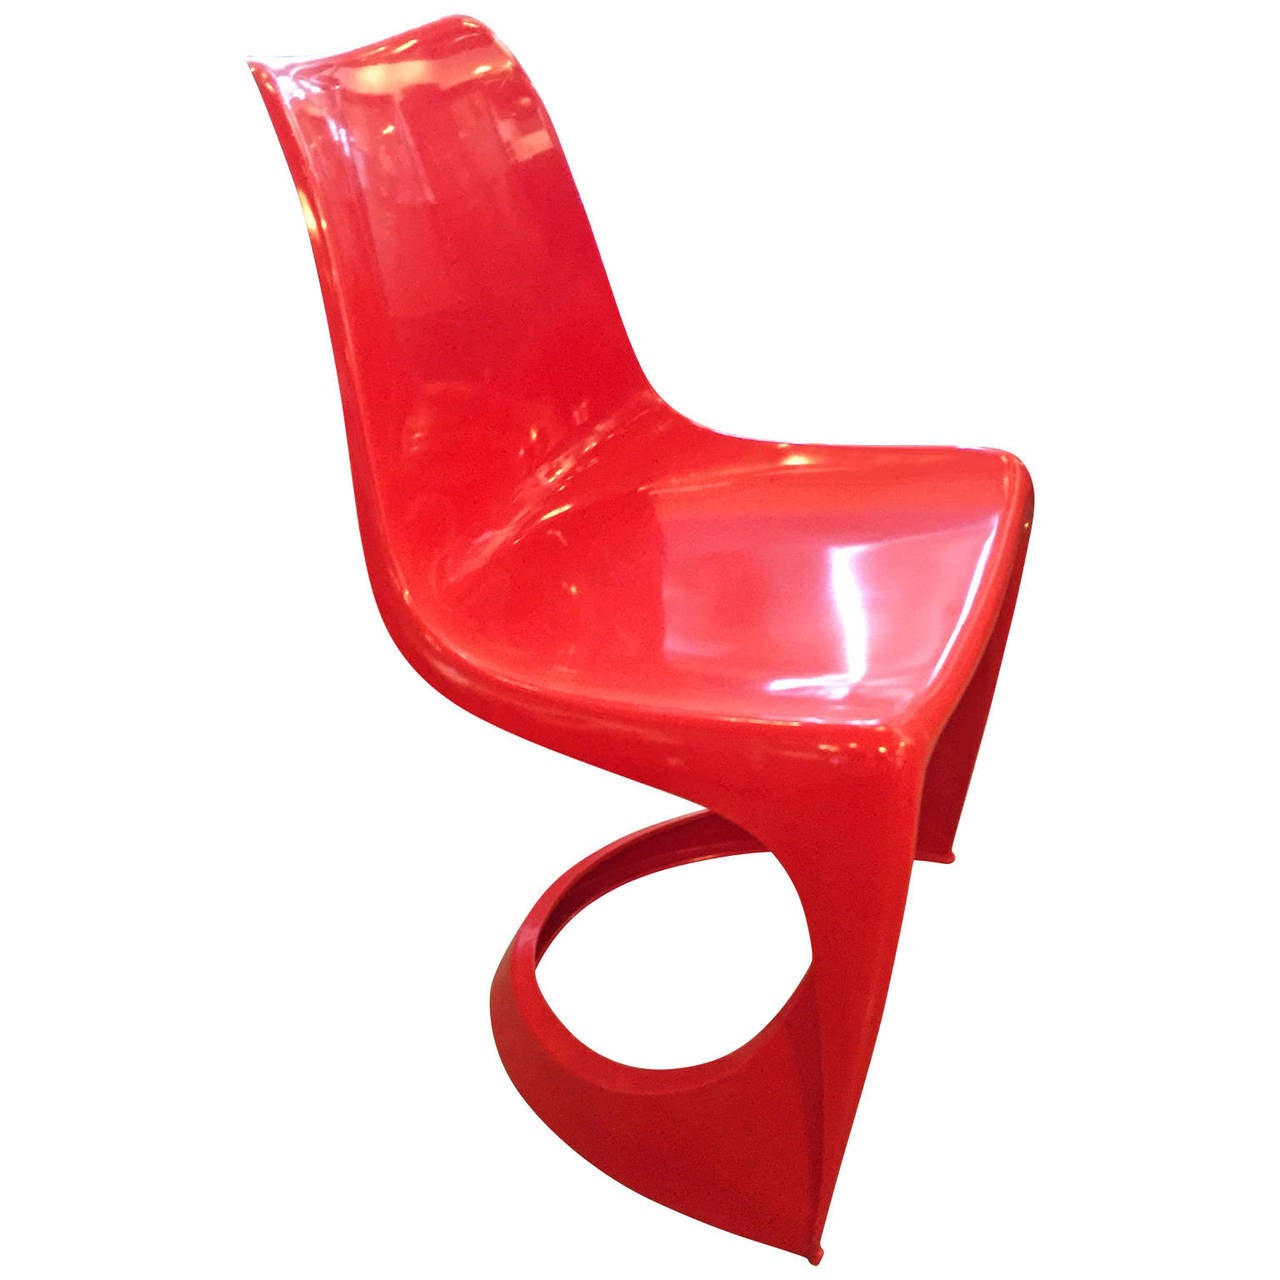 plastic molded chairs fox fishing chair spares pair of vintage at 1stdibs